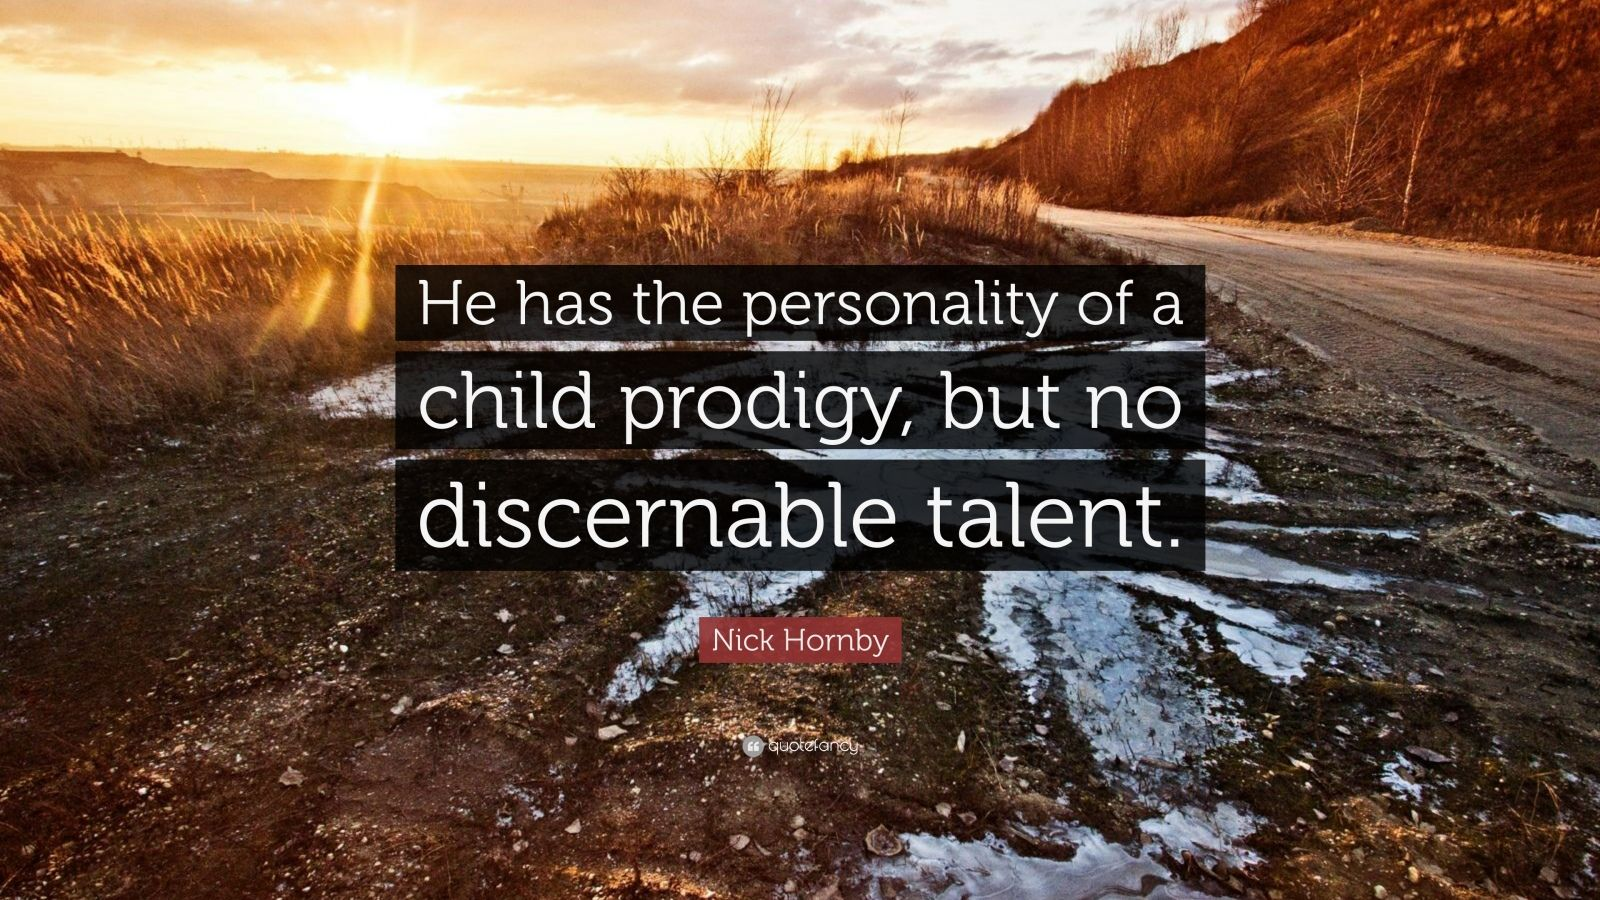 """Nick Hornby Quote: """"He has the personality of a child prodigy, but no discernable talent."""""""